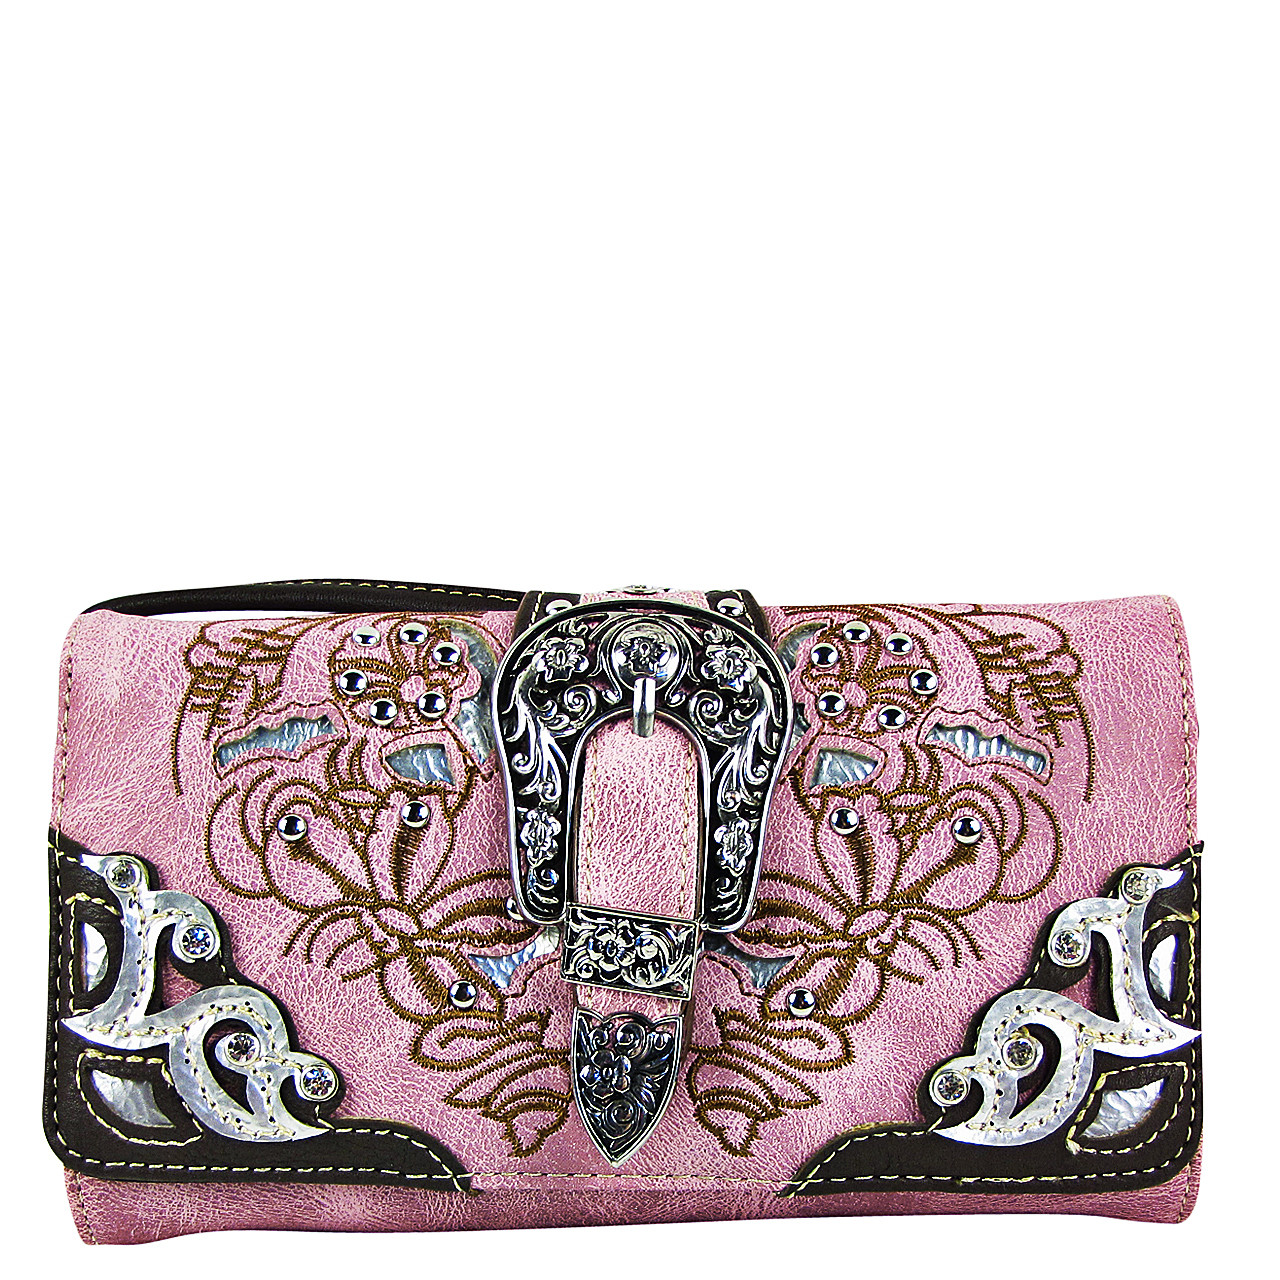 PINK STUDDED BUCKLE LOOK CLUTCH TRIFOLD WALLET CW1-1287PNK